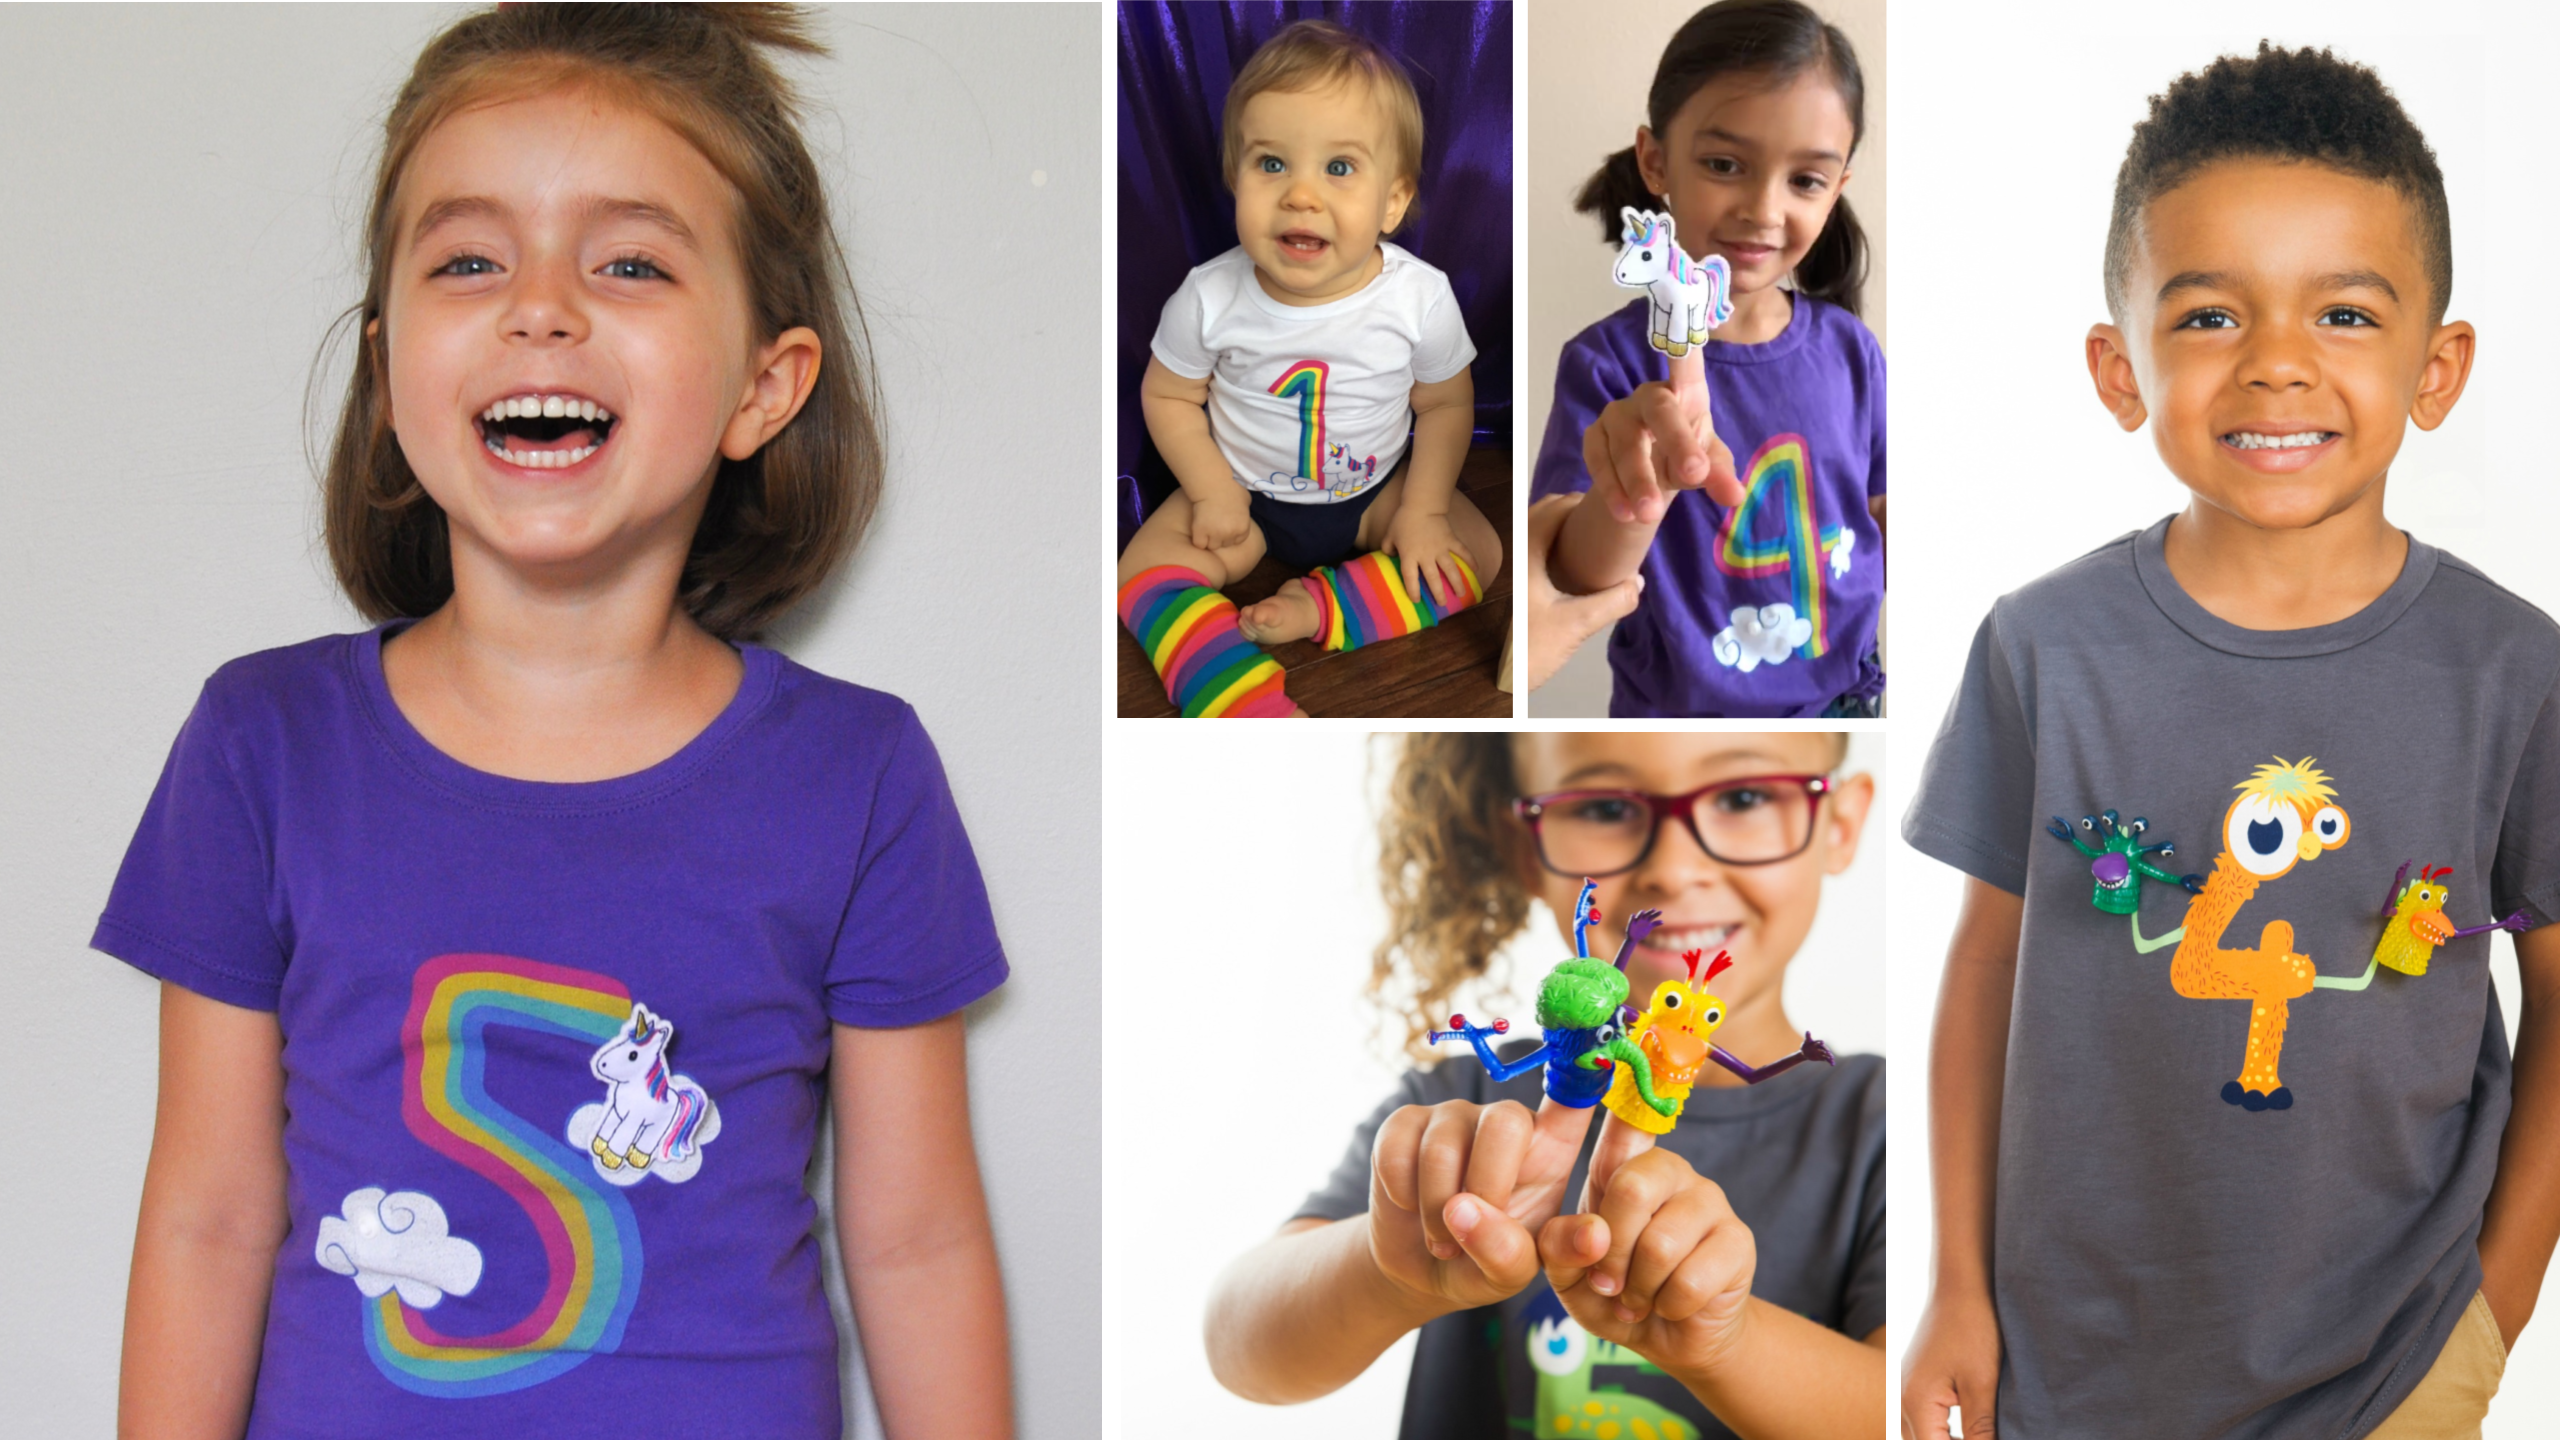 The coolest kids birthday shirts there ever were! Detachable finger puppets snap on and off to keep your kiddo entertained anywhere. // #birthdayshirt #kidsbirthdayshirts #monsterparty #unicornparty #rainbowbirthday #unicornbirthday #unicornshirt #rainbowunicorn #monsterbirthday